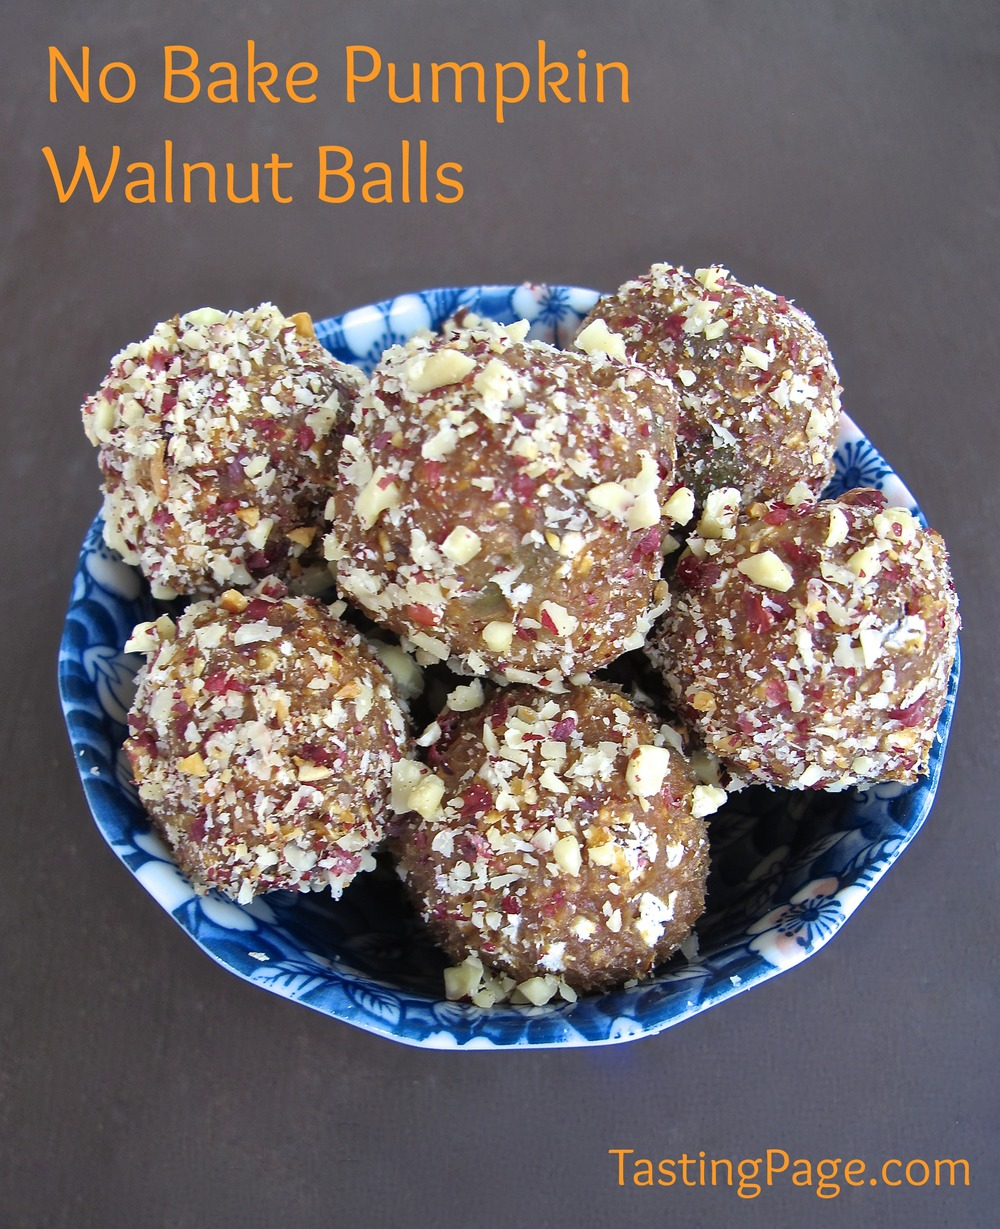 No bake pumpkin walnut balls